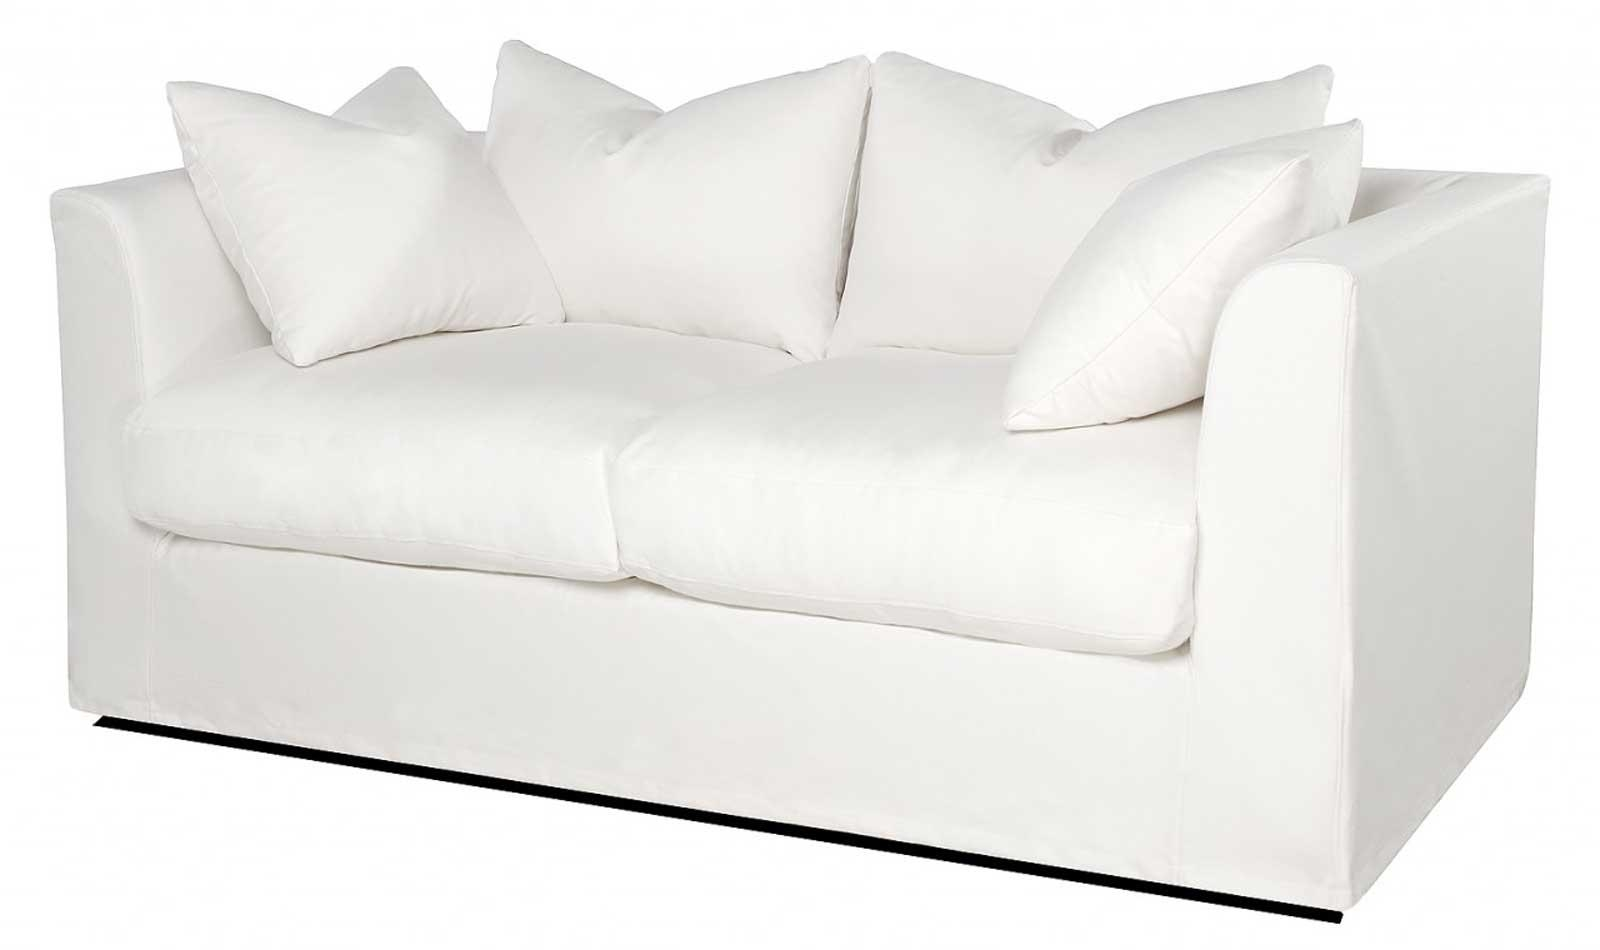 Sleeper Sofa Slipcover Upholstery White Sleeper Sofas Sectional inside Slipcovers For Sleeper Sofas